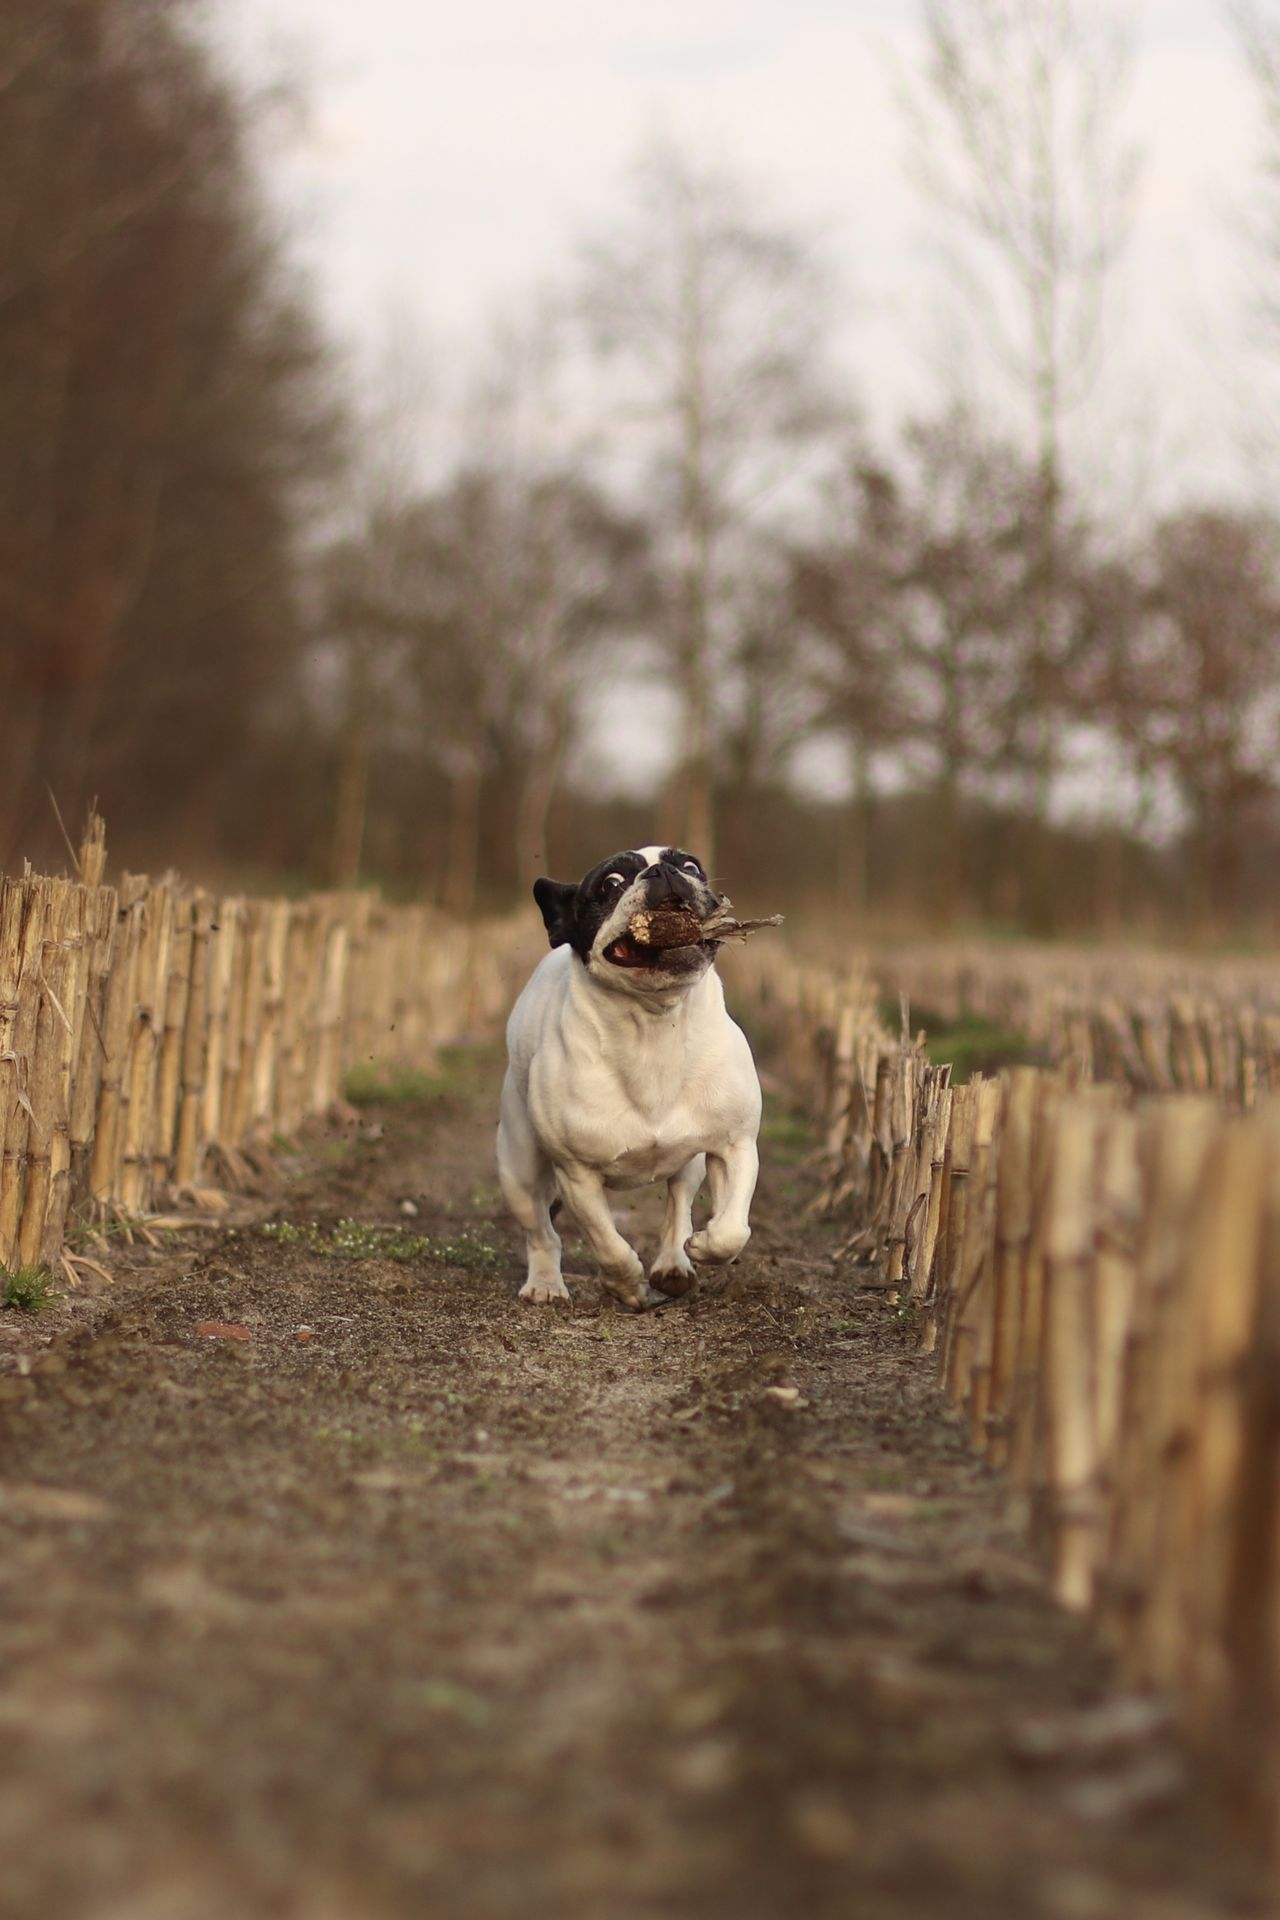 Action Shot  Action Shots Corn Field Dog In Action Dog Photography Französische Bulldogge  Französische Bulldogge Hat Spaß Französische Bulldogge Im Maisfeld French Bulldog French Bulldog Having Fun French Bulldog In Corn Field Frenchbulldog Frenchbulldogs Fun Hund In Aktion Hundefotografie Nature Outdoors Pets Playing Dog Rennender Hund Running Dog Running French Bulldog Spielender Bully Spielender Hund Let's Go. Together.